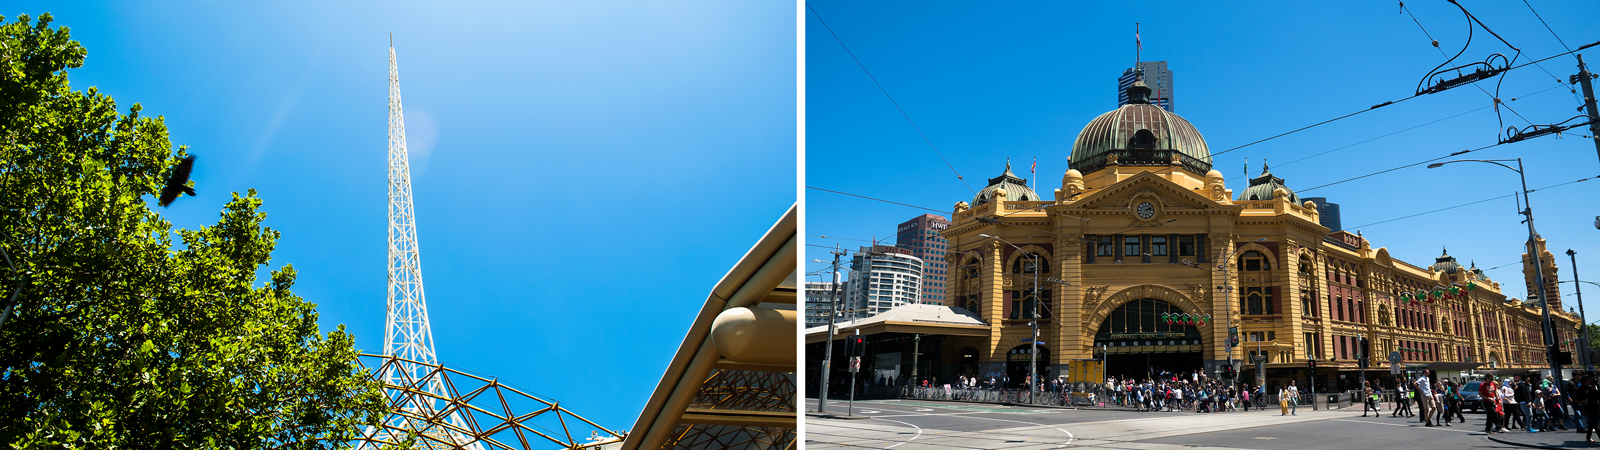 Arts Centre and Flinders St Station